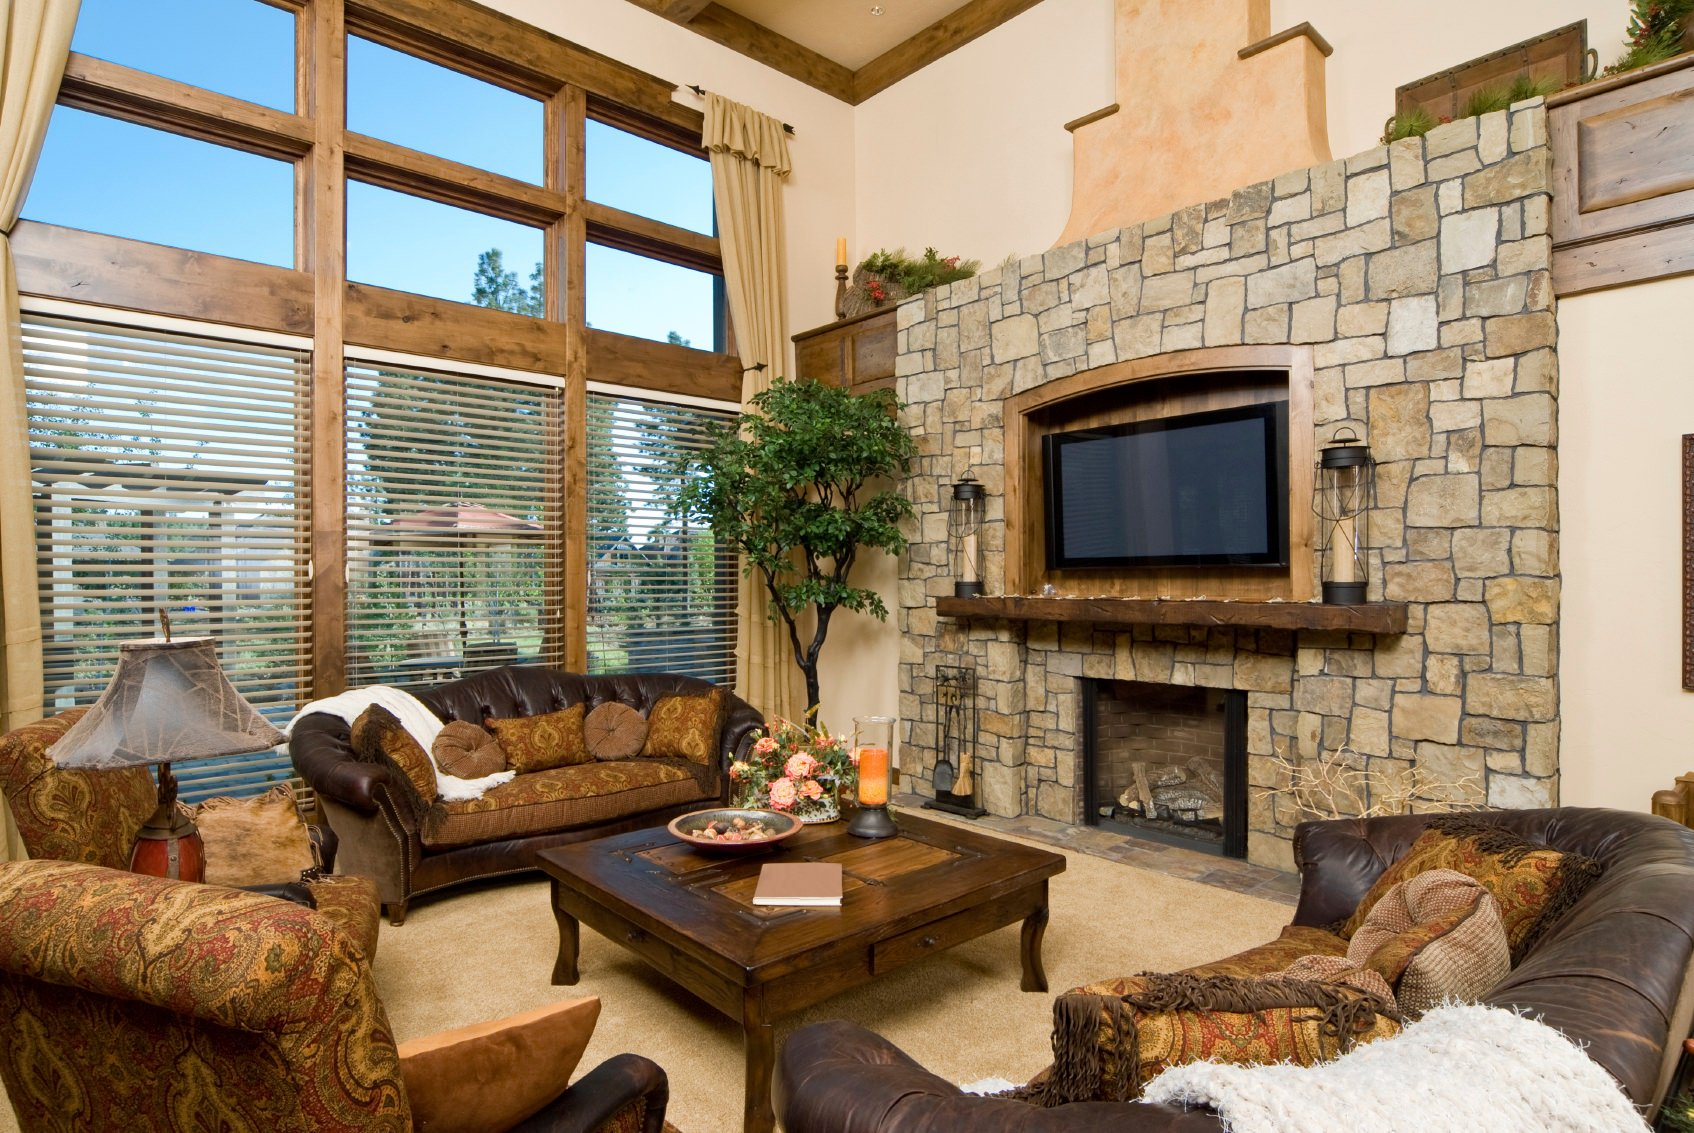 Rustic living space featuring elegant seats and a stone fireplace along with a built-in place for the TV.